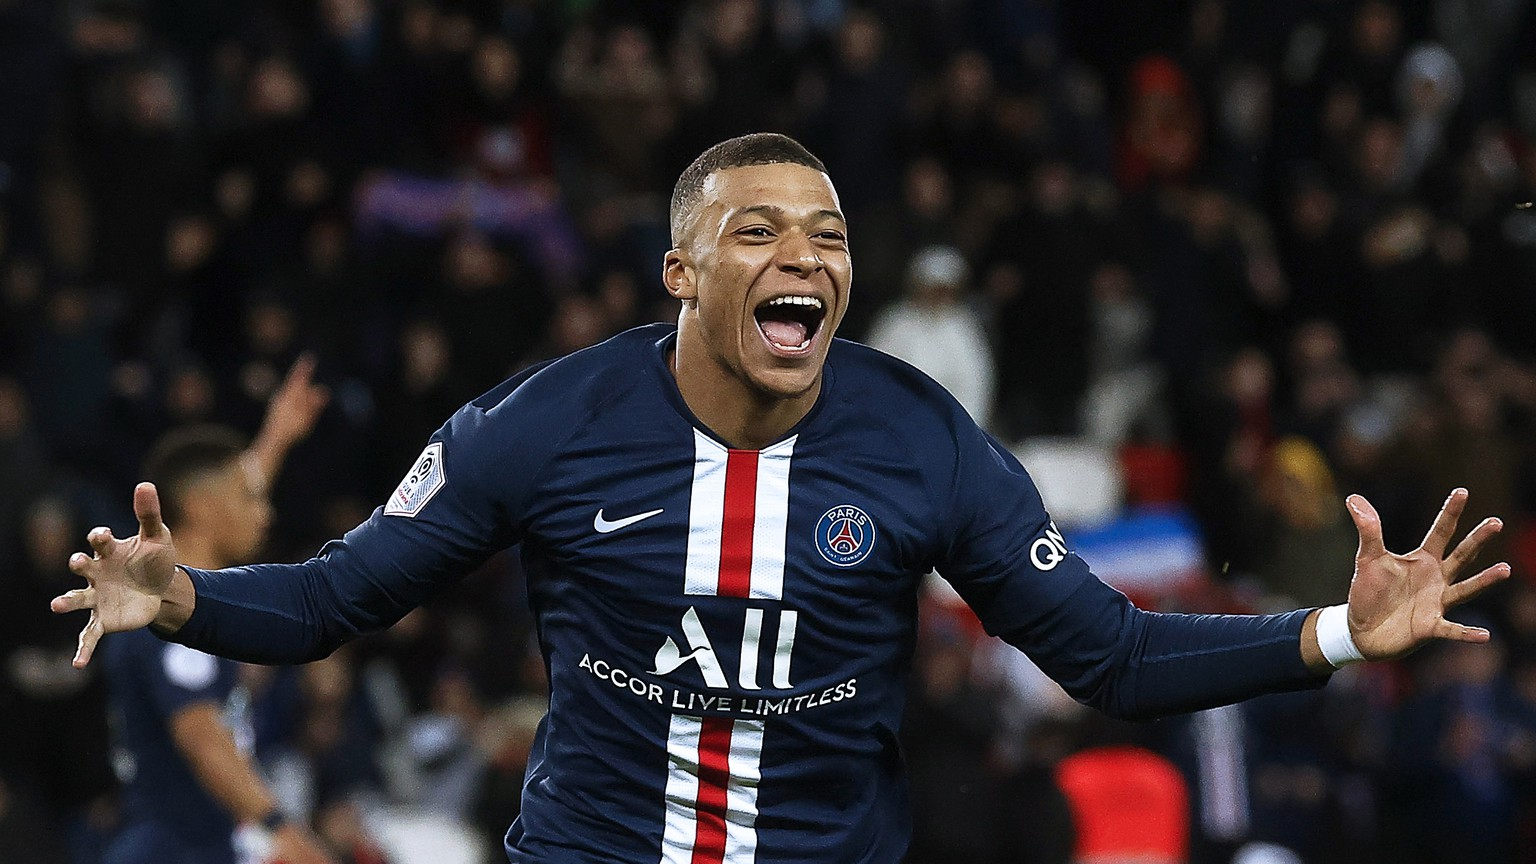 epa08260092 Paris Saint-Germain's Kylian Mbappe celebrates after scoring the 4-0 lead during the French Ligue 1 soccer match between Paris Saint-Germain (PSG) and Dijon FCO at the Parc des Princes stadium in Paris, France, 29 February 2020.  EPA/YOAN VALAT